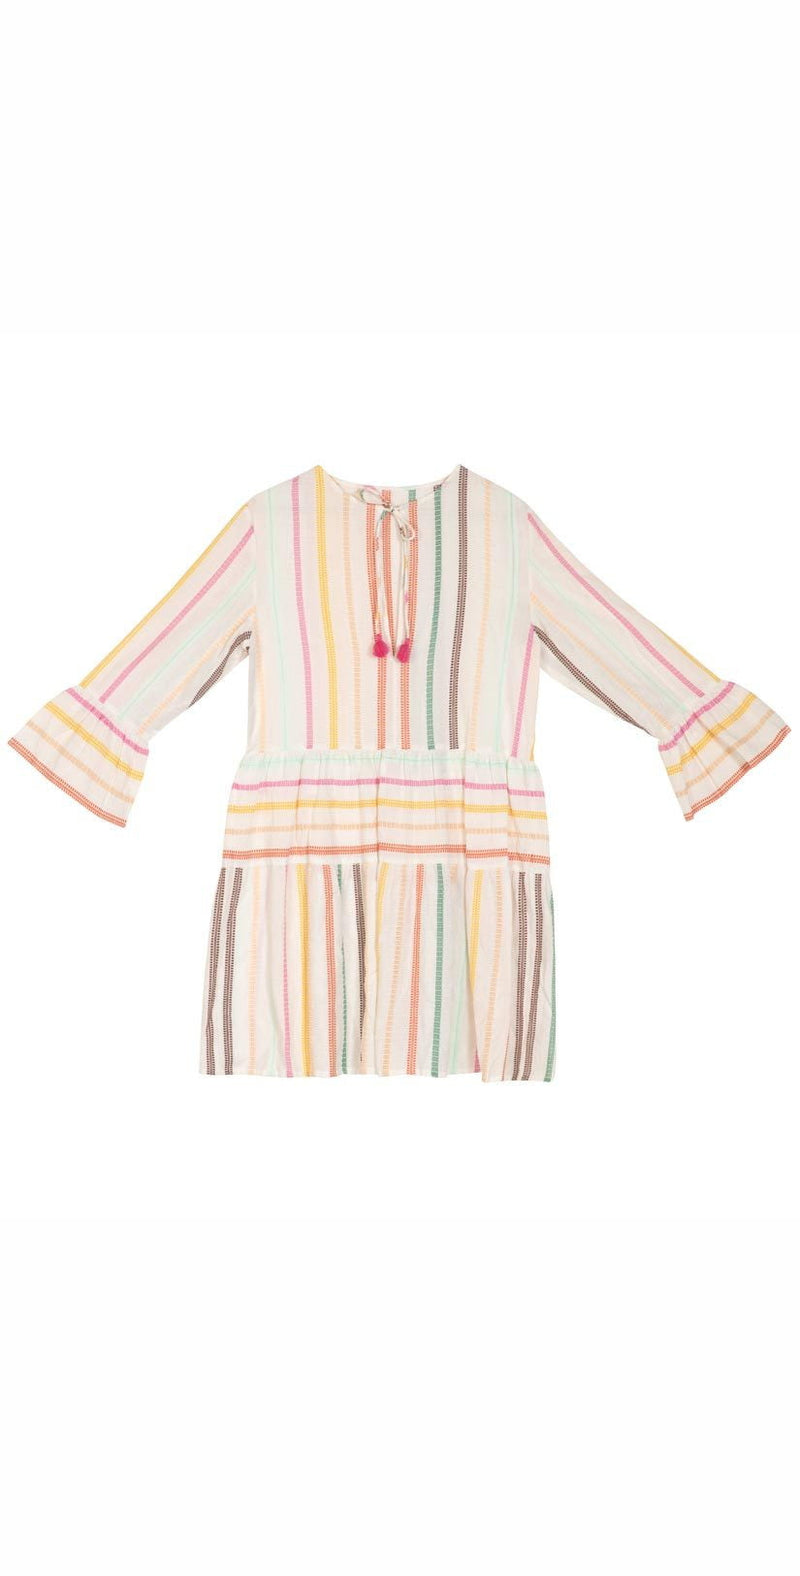 PilyQ Multistripe Morgan Dress MLT-018D: